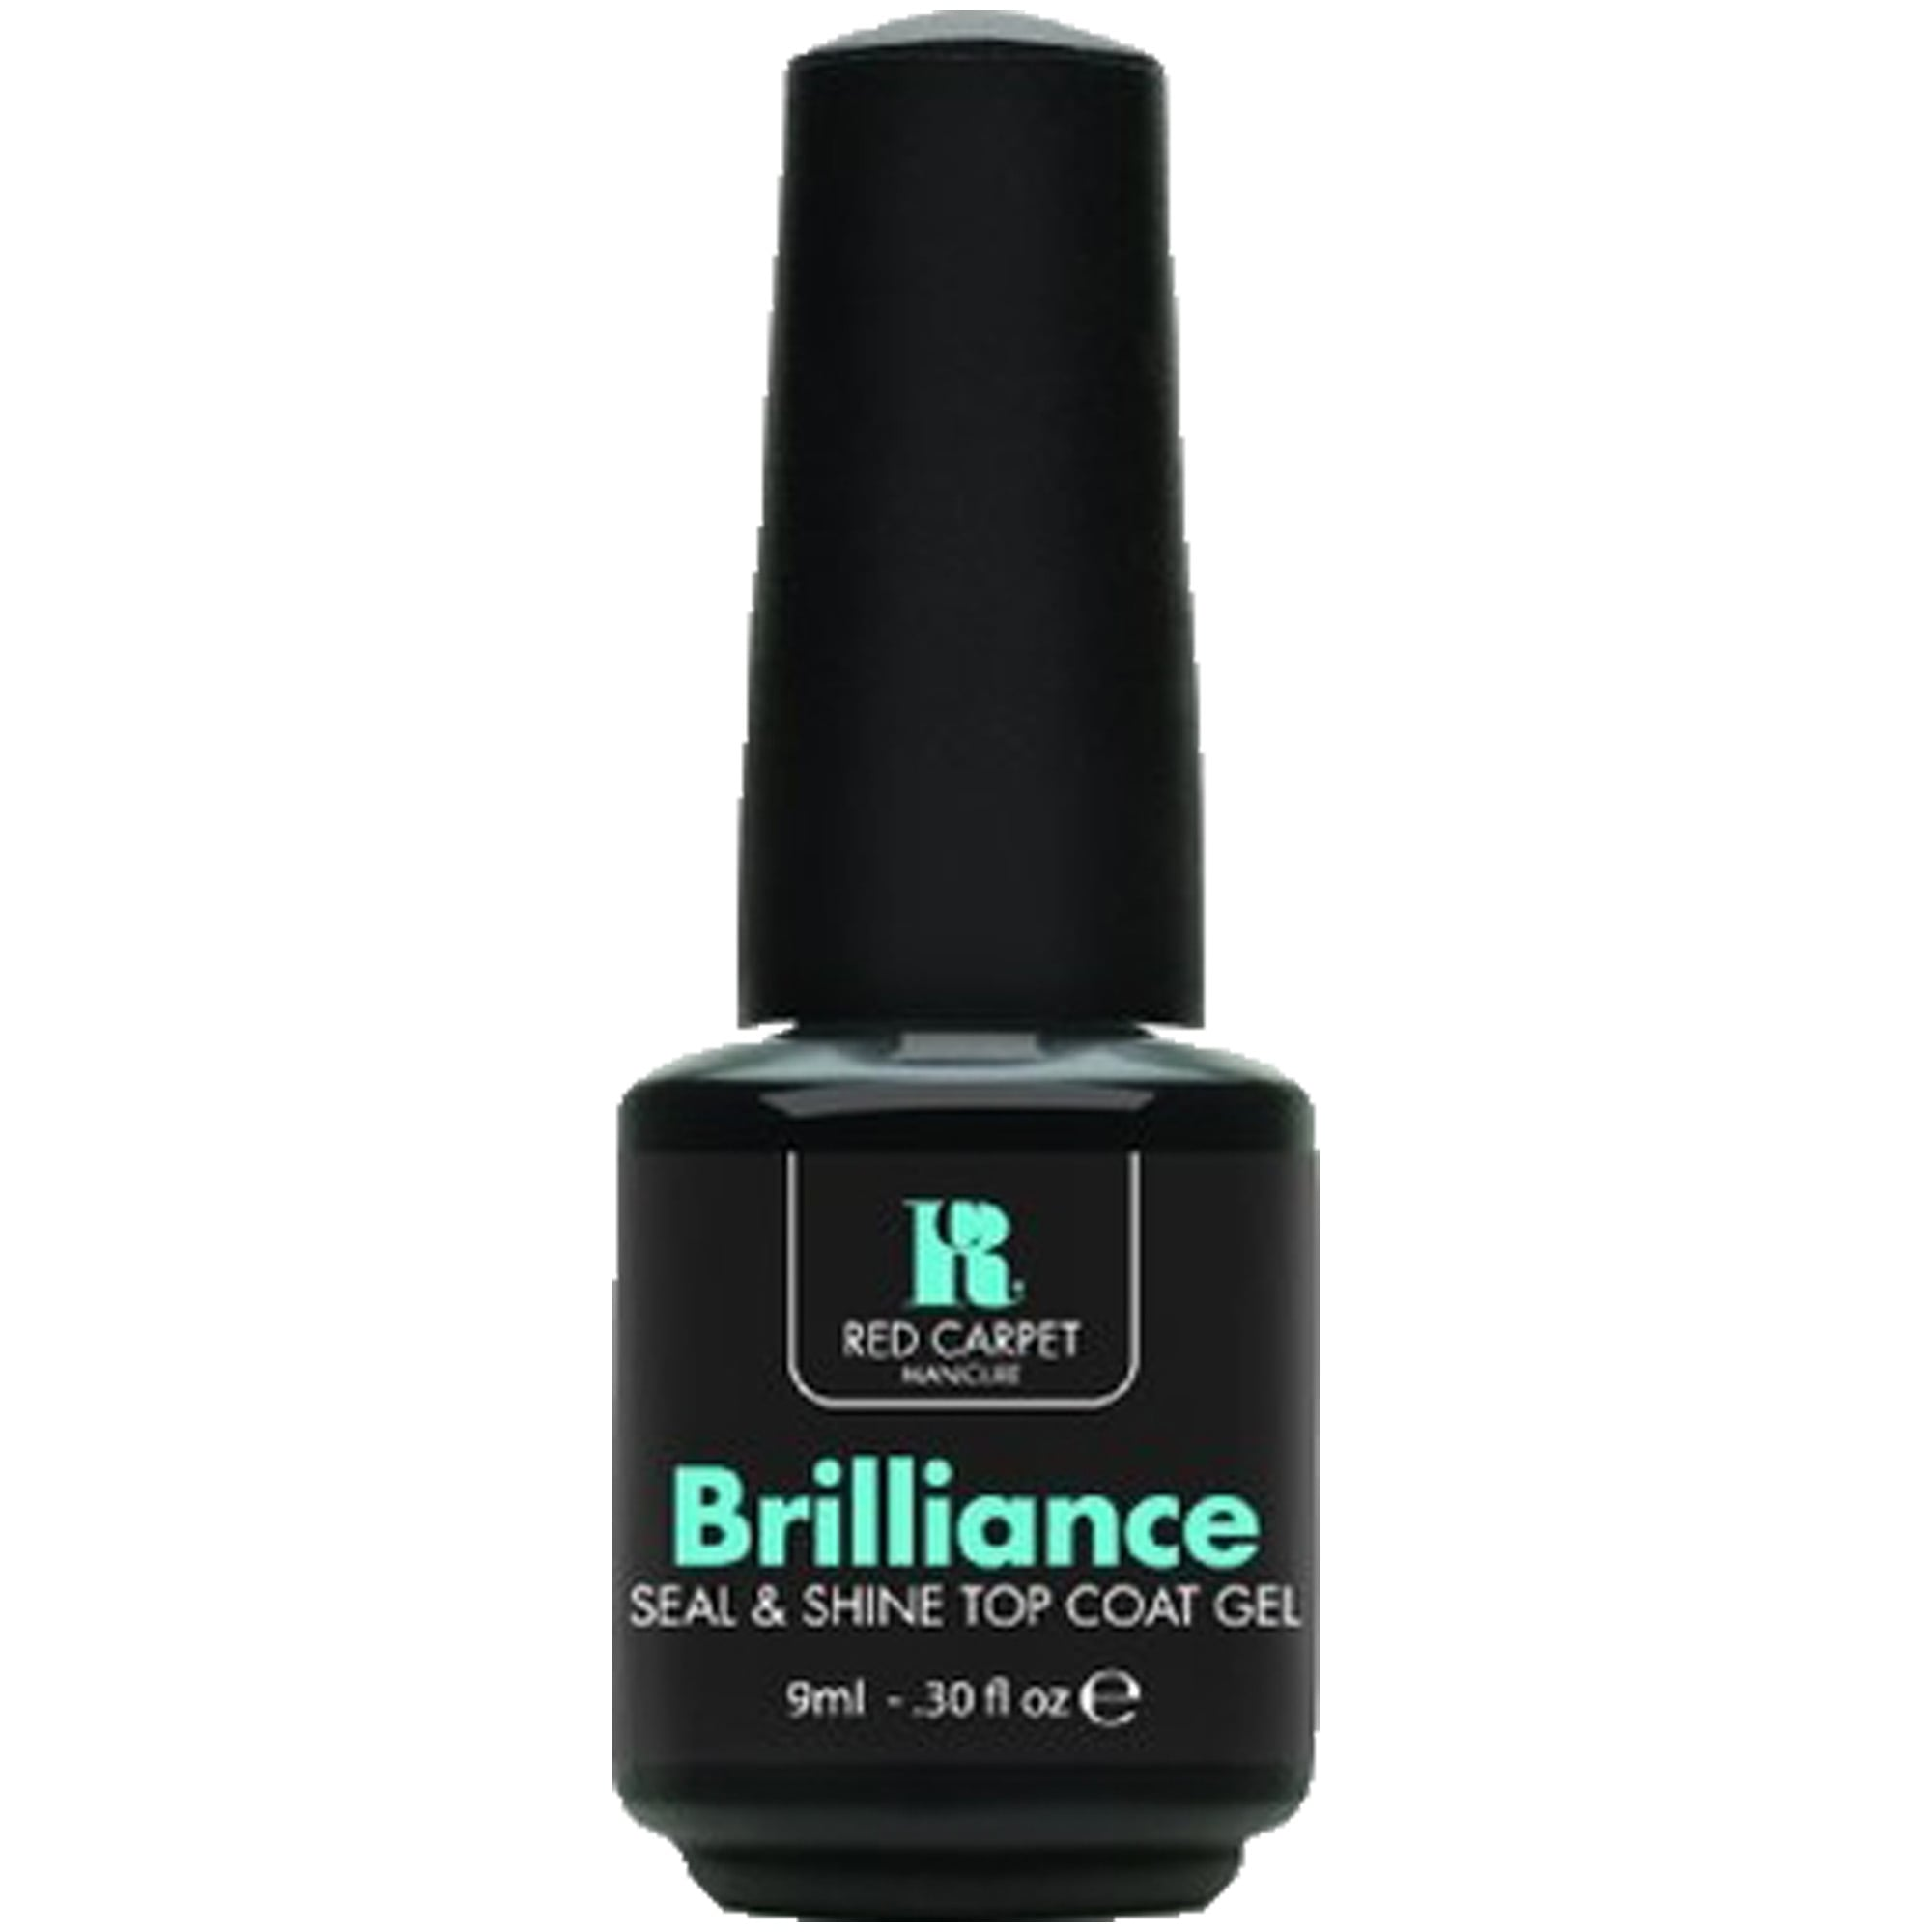 red carpet brilliance seal shine top coat gel 9ml quality nails. Black Bedroom Furniture Sets. Home Design Ideas